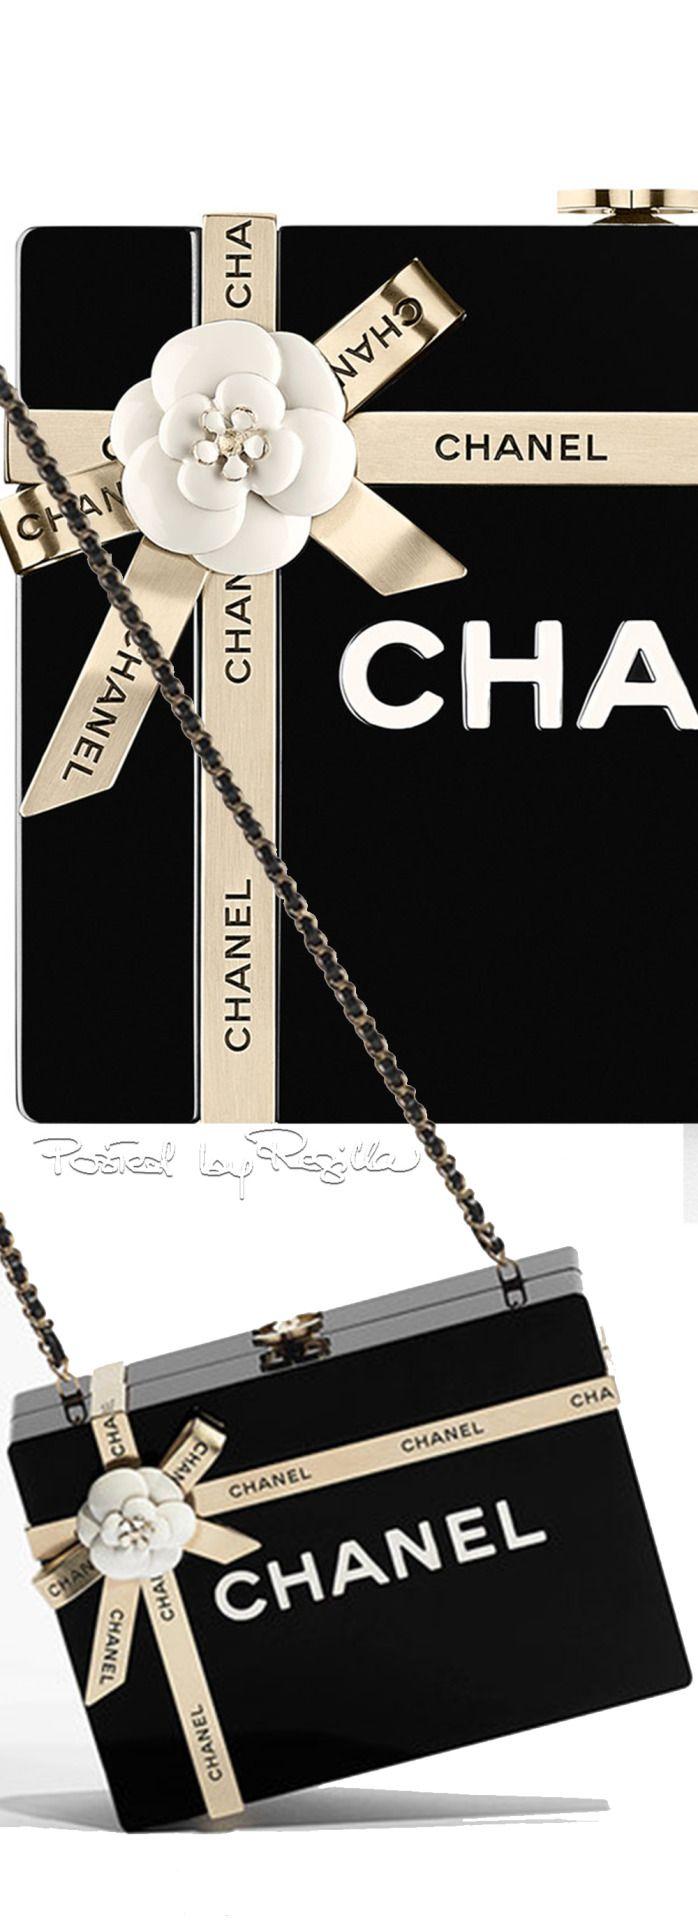 Regilla ⚜ Chanel♡Beauty and makeup products available from Posh Beautique, our store brings international makeup brands right to your doorstep #poshbeautique #makeup #southafrica♡